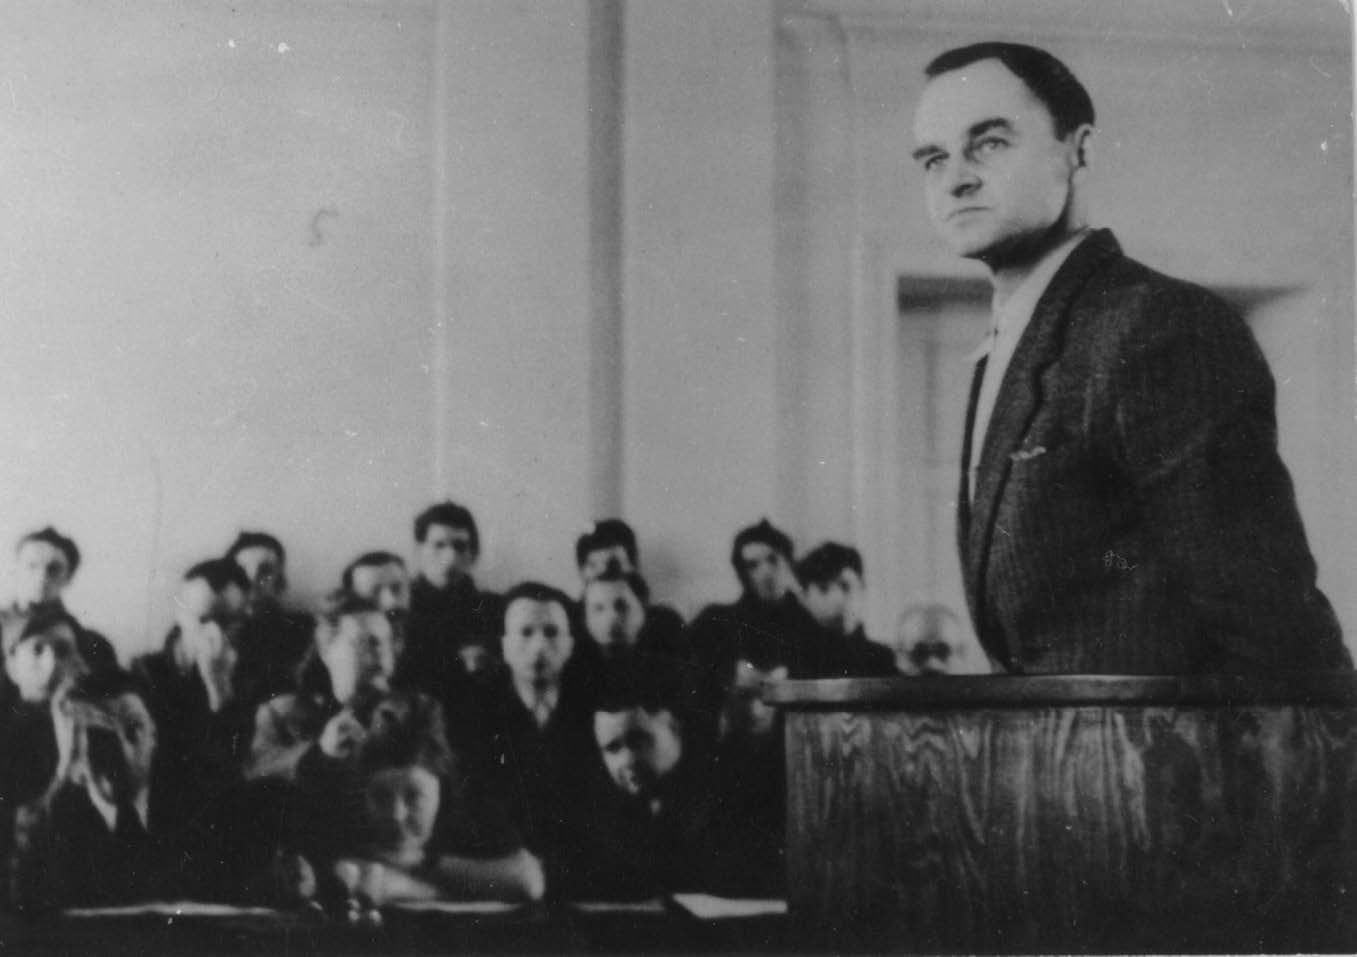 Witold Pilecki pere